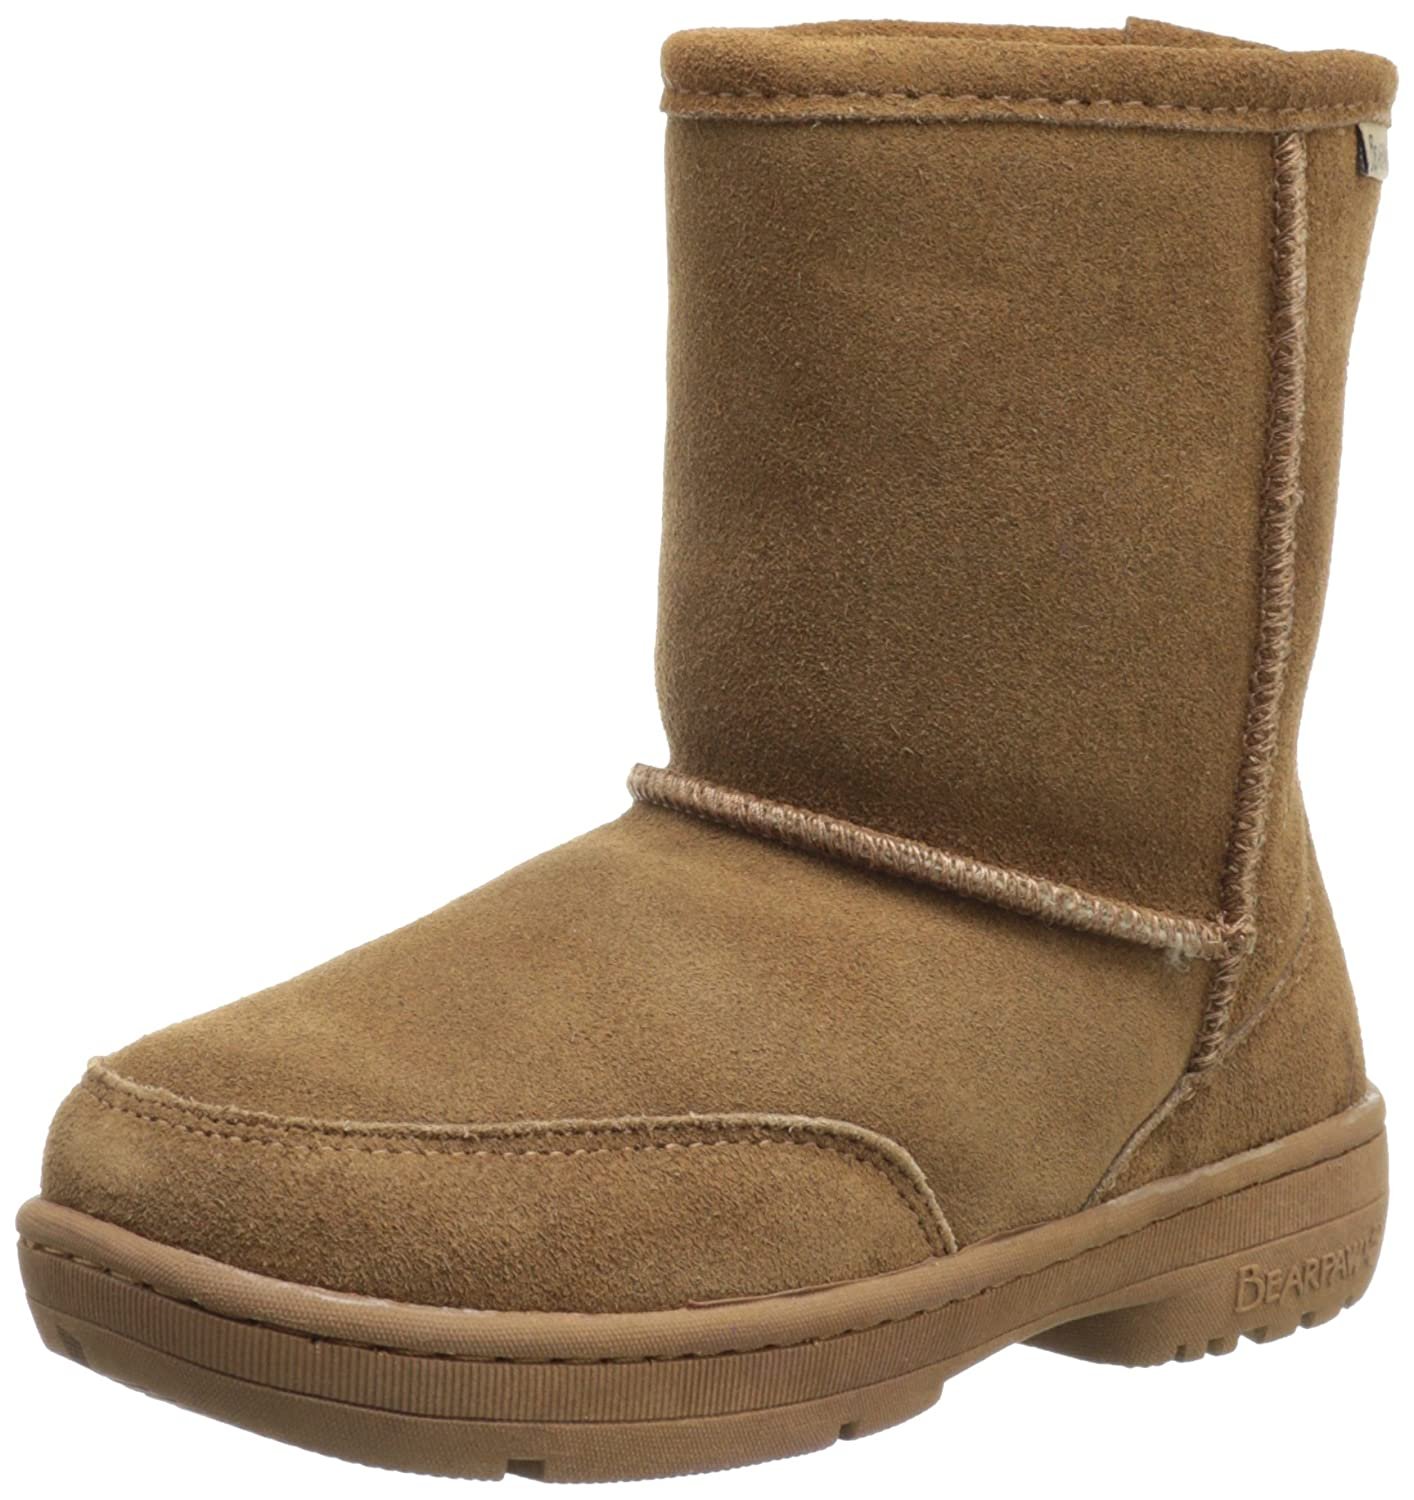 Youth Fur Boots Bearpaw Meadow Youth Boot Big